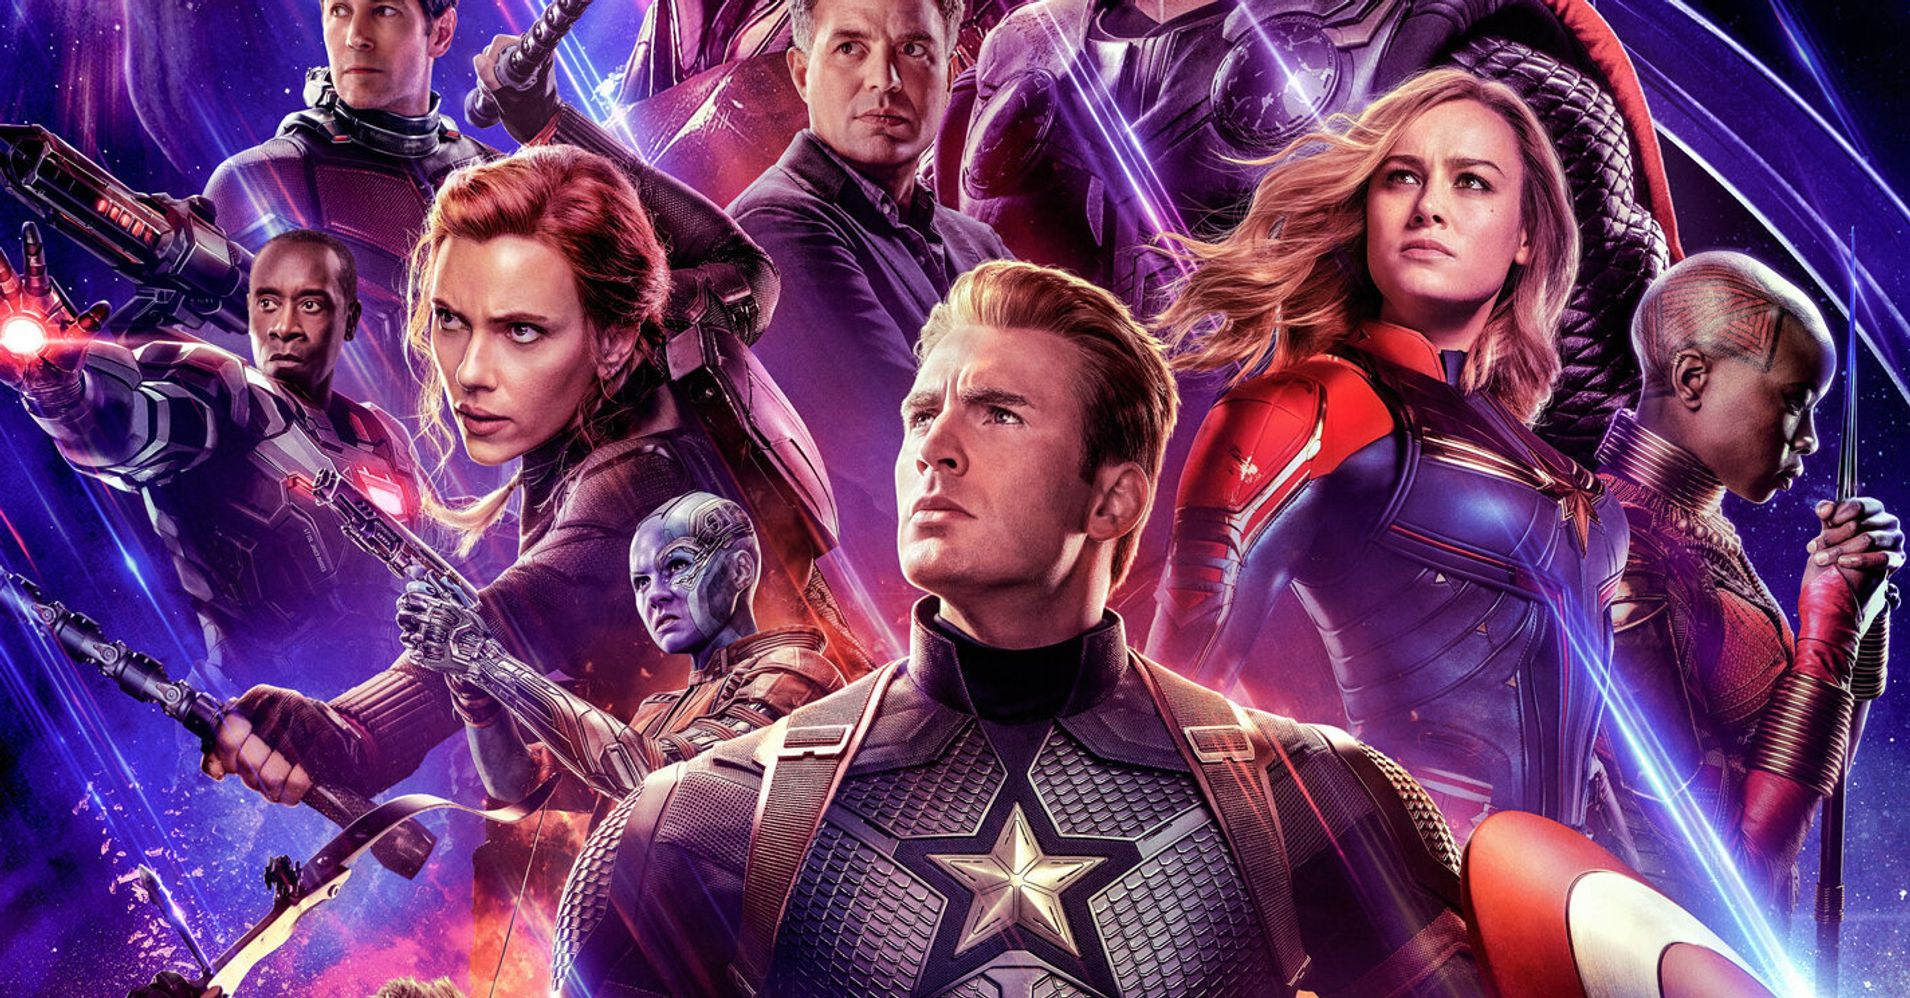 Lingering 'Avengers: Endgame' Questions Finally Answered